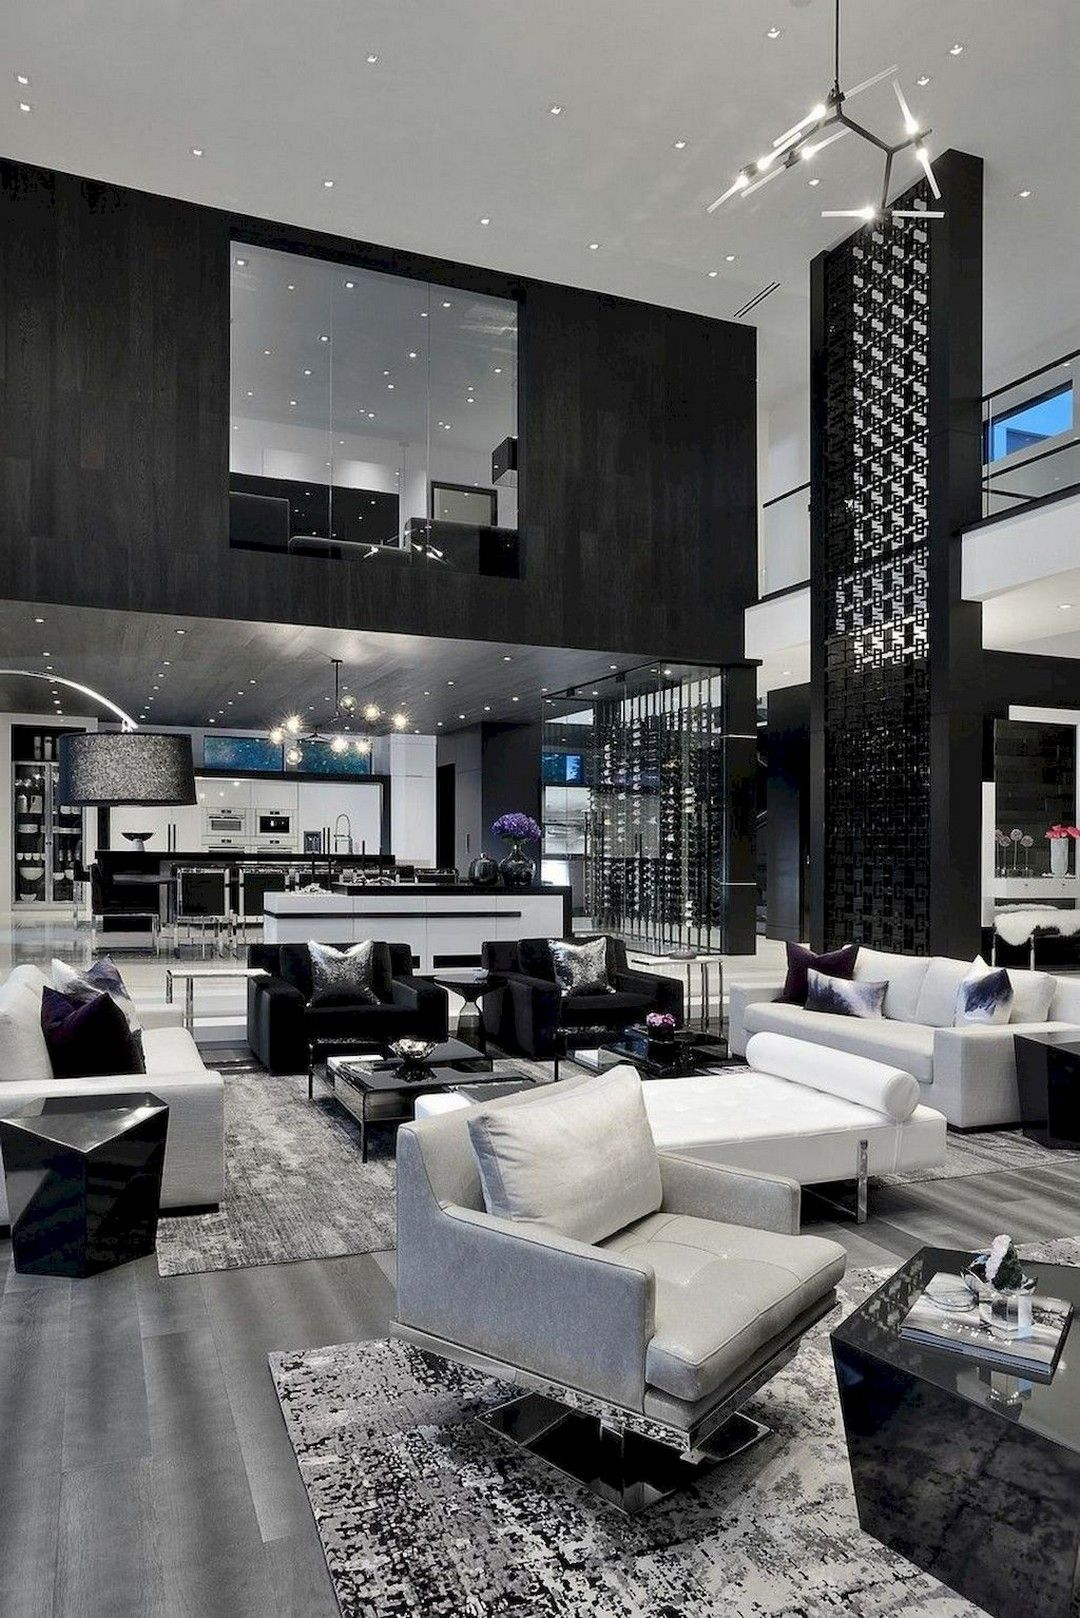 What Do You Think About This Fascinating Home Interior Design Modern Luxury Interior Luxury Homes Interior Luxury Interior Design